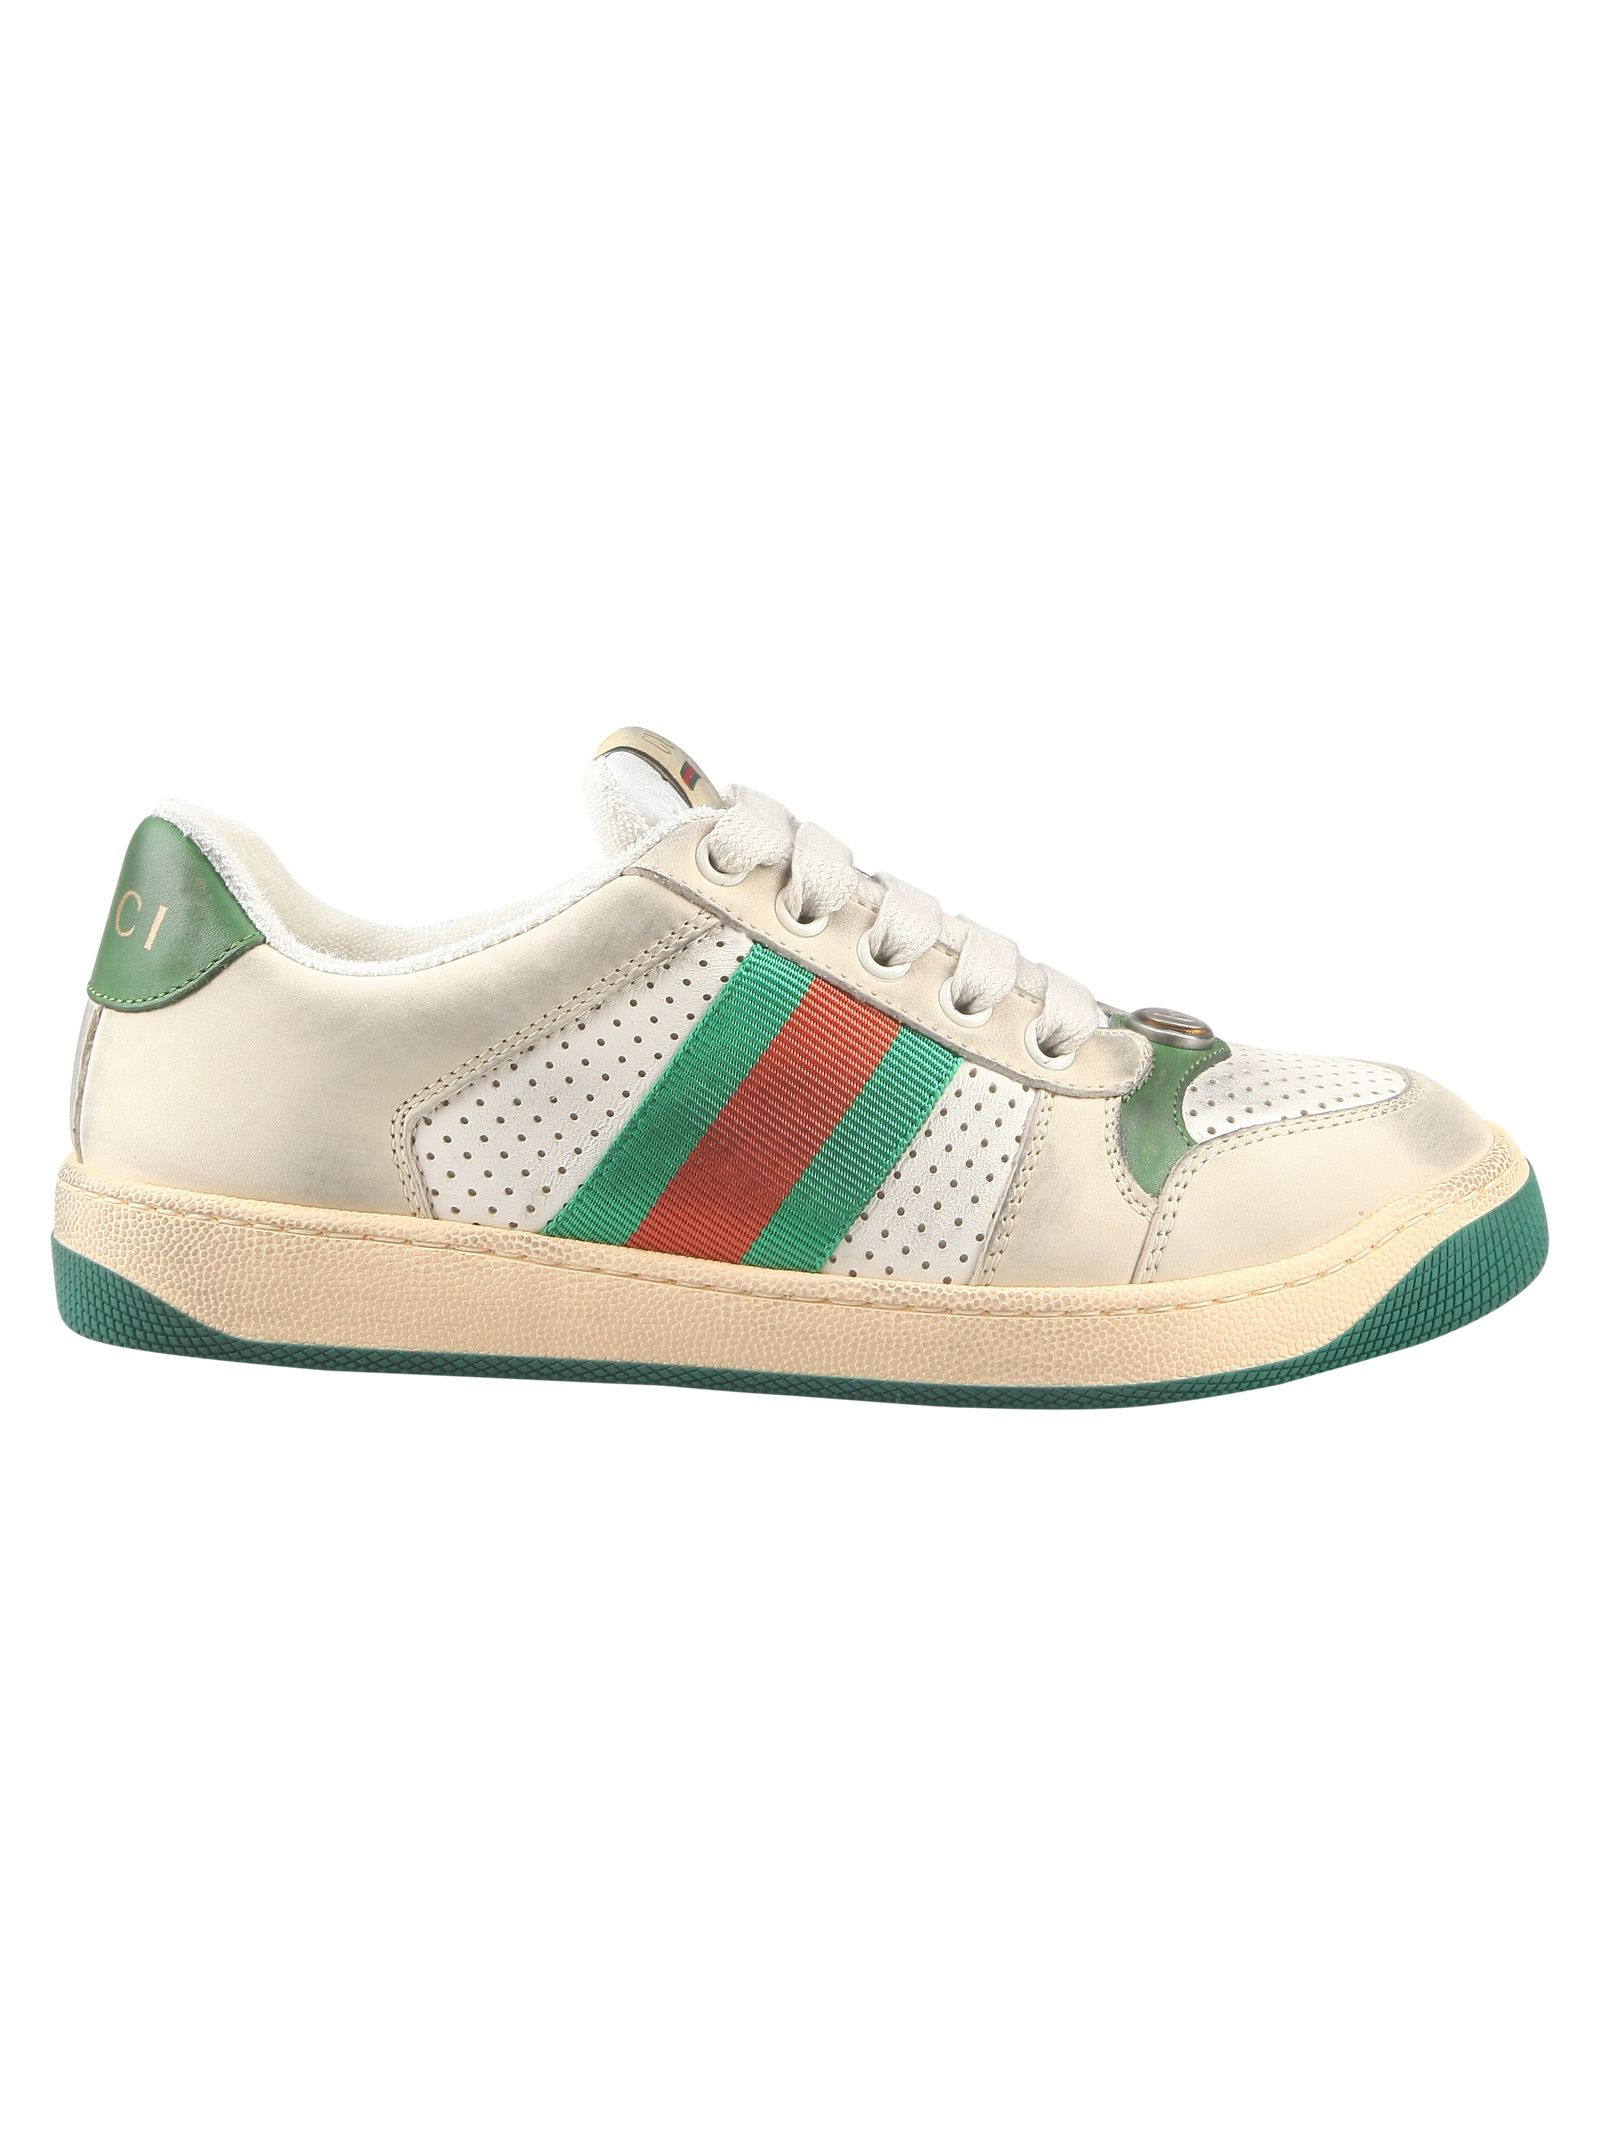 Gucci Sneakers Gucci Sneakers